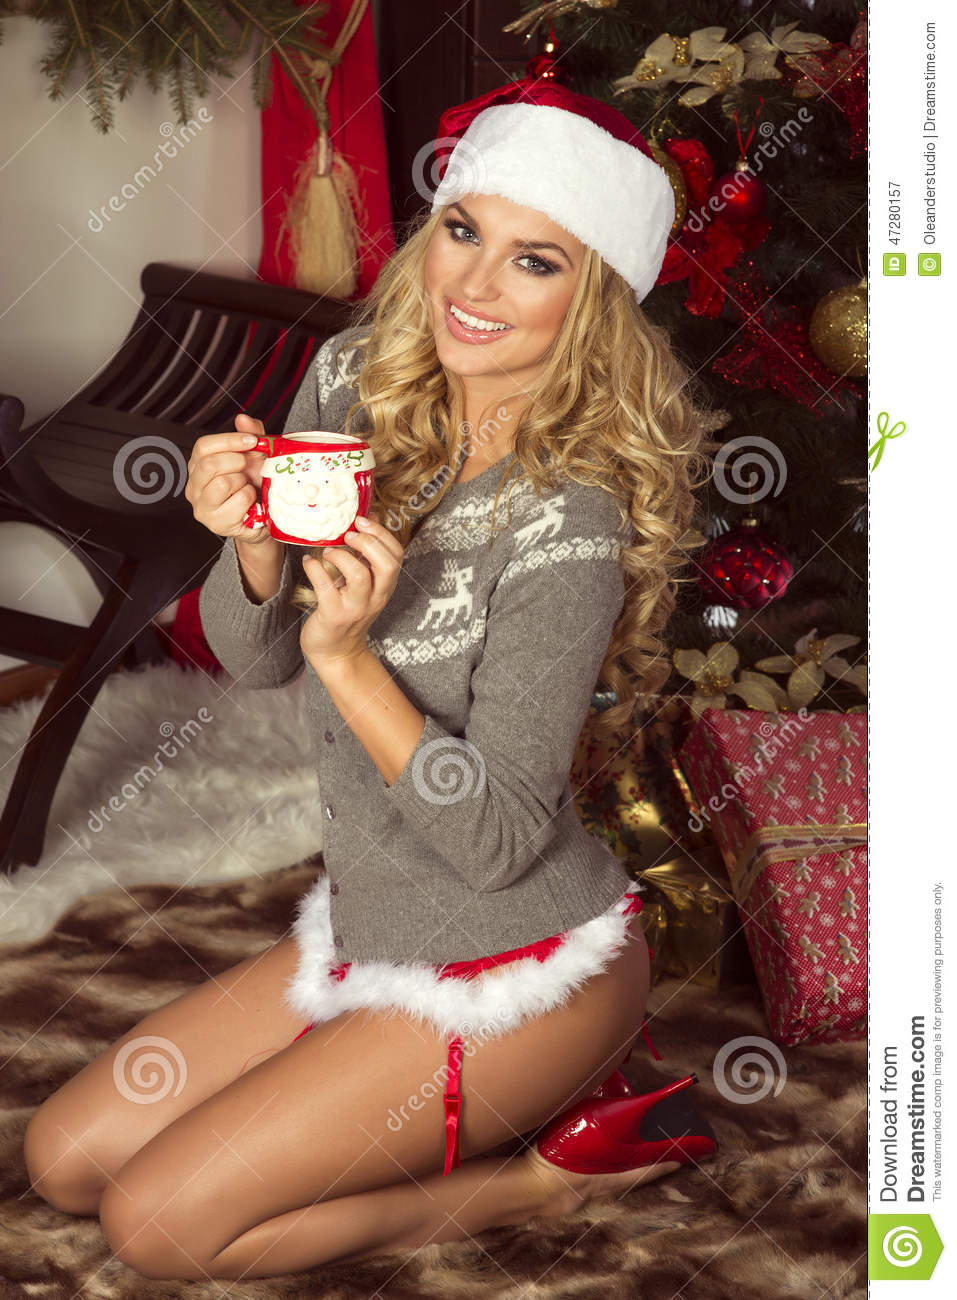 3 blondes in santa outfit give live show 9